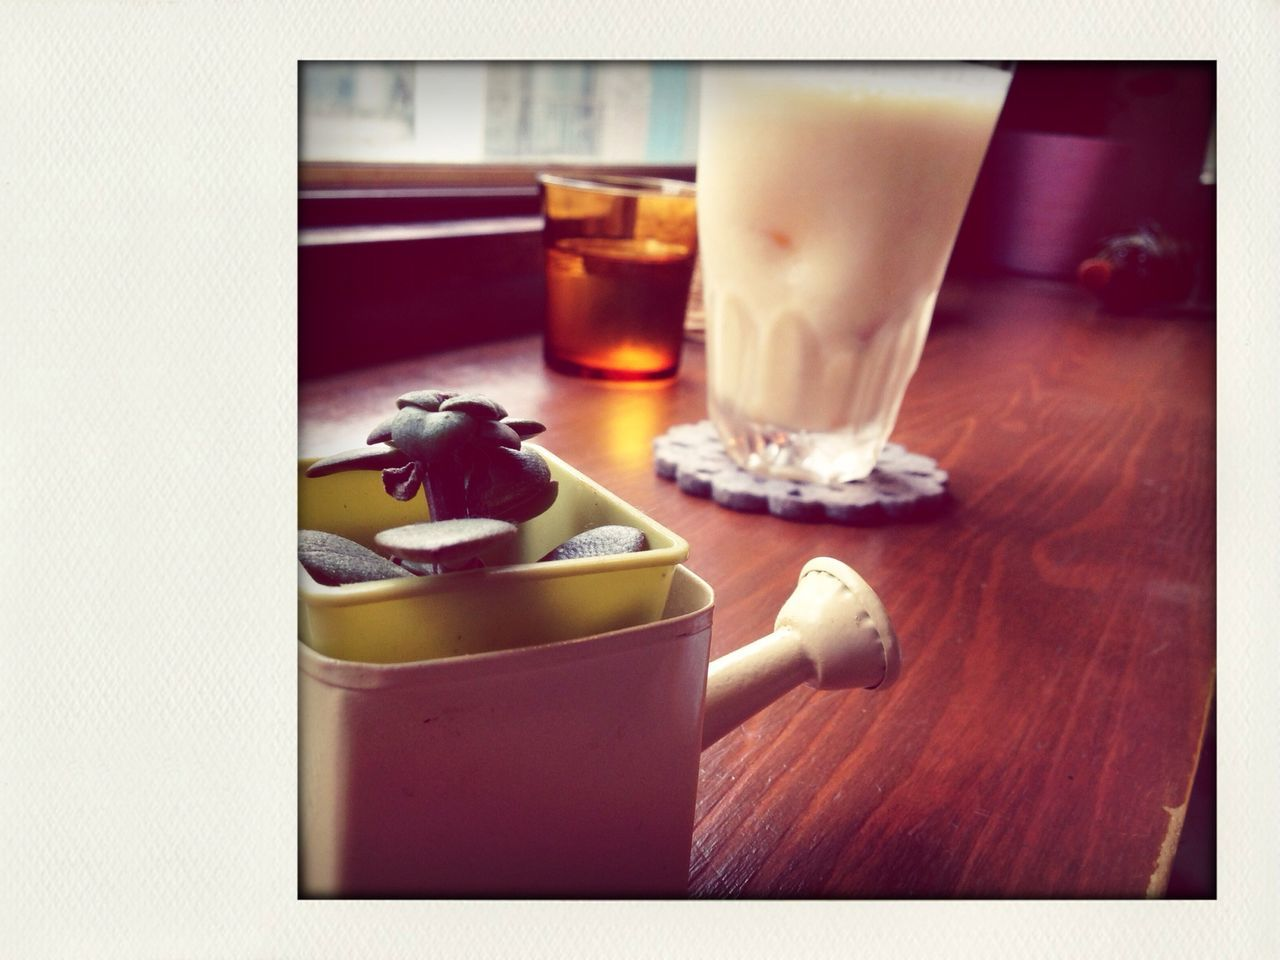 Watering can with drinks on table at cafe